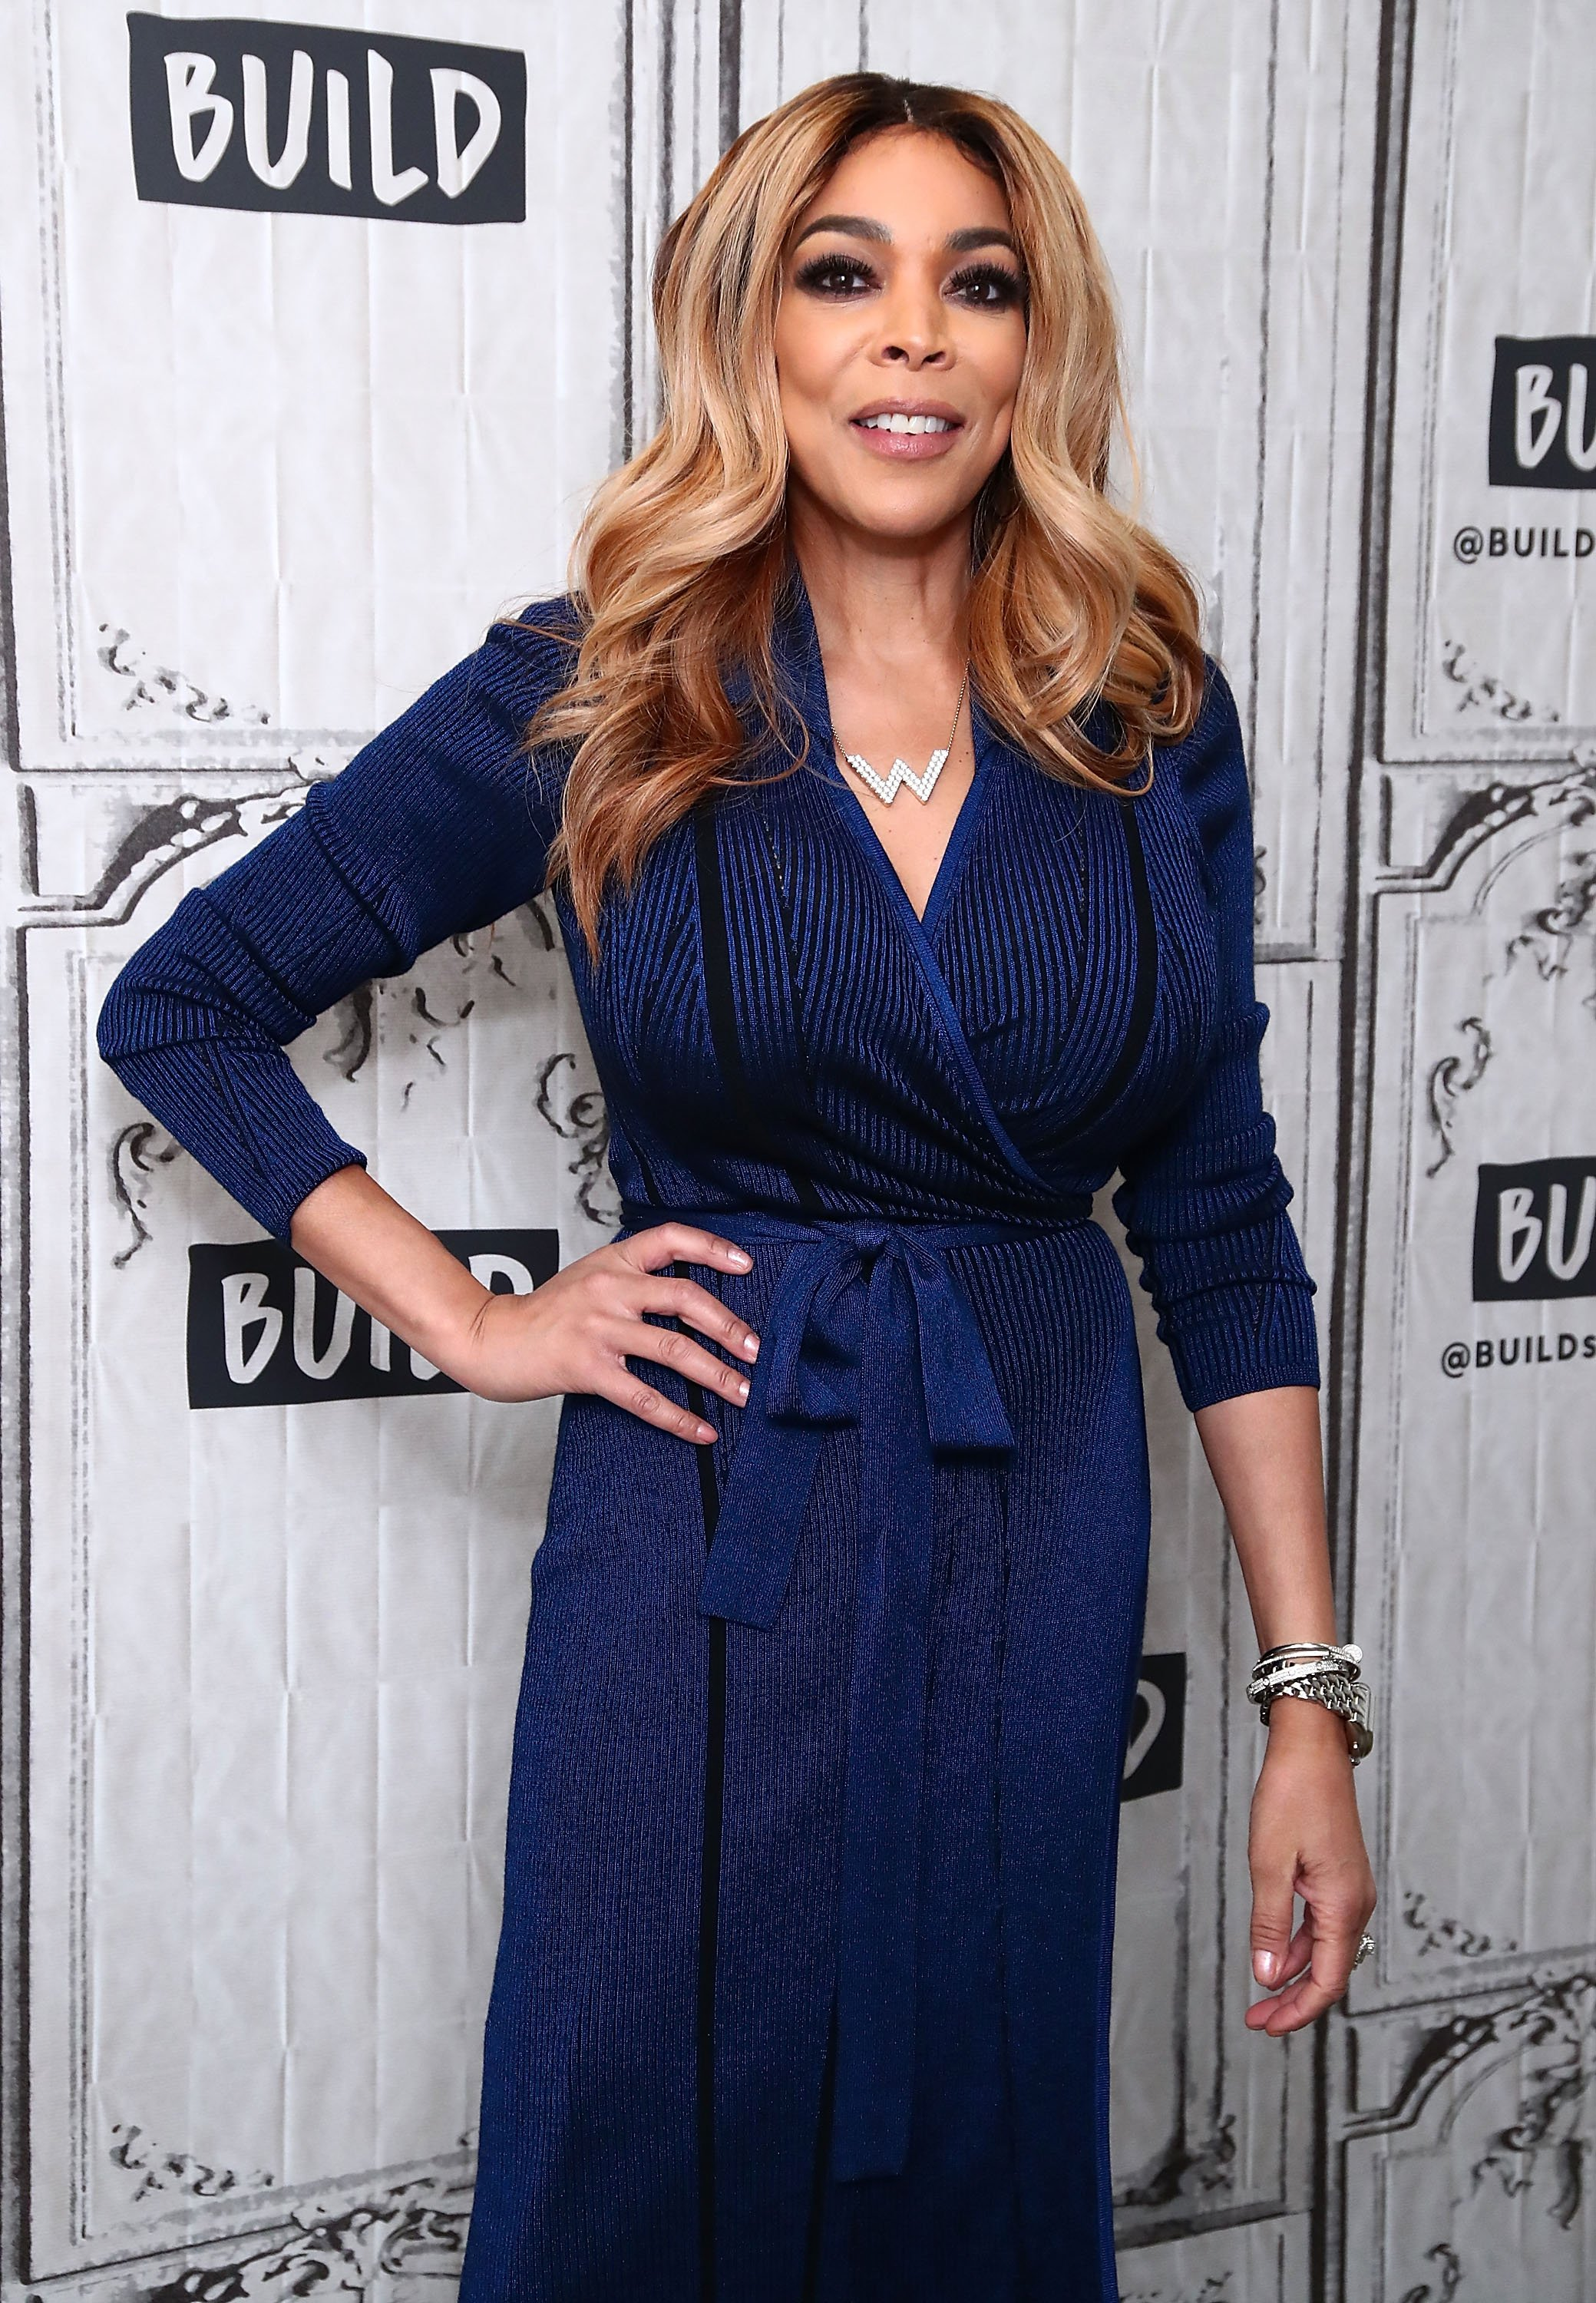 Wendy Williams at Build Studio on April 17, 2017 in New York City | Photo: Getty Images